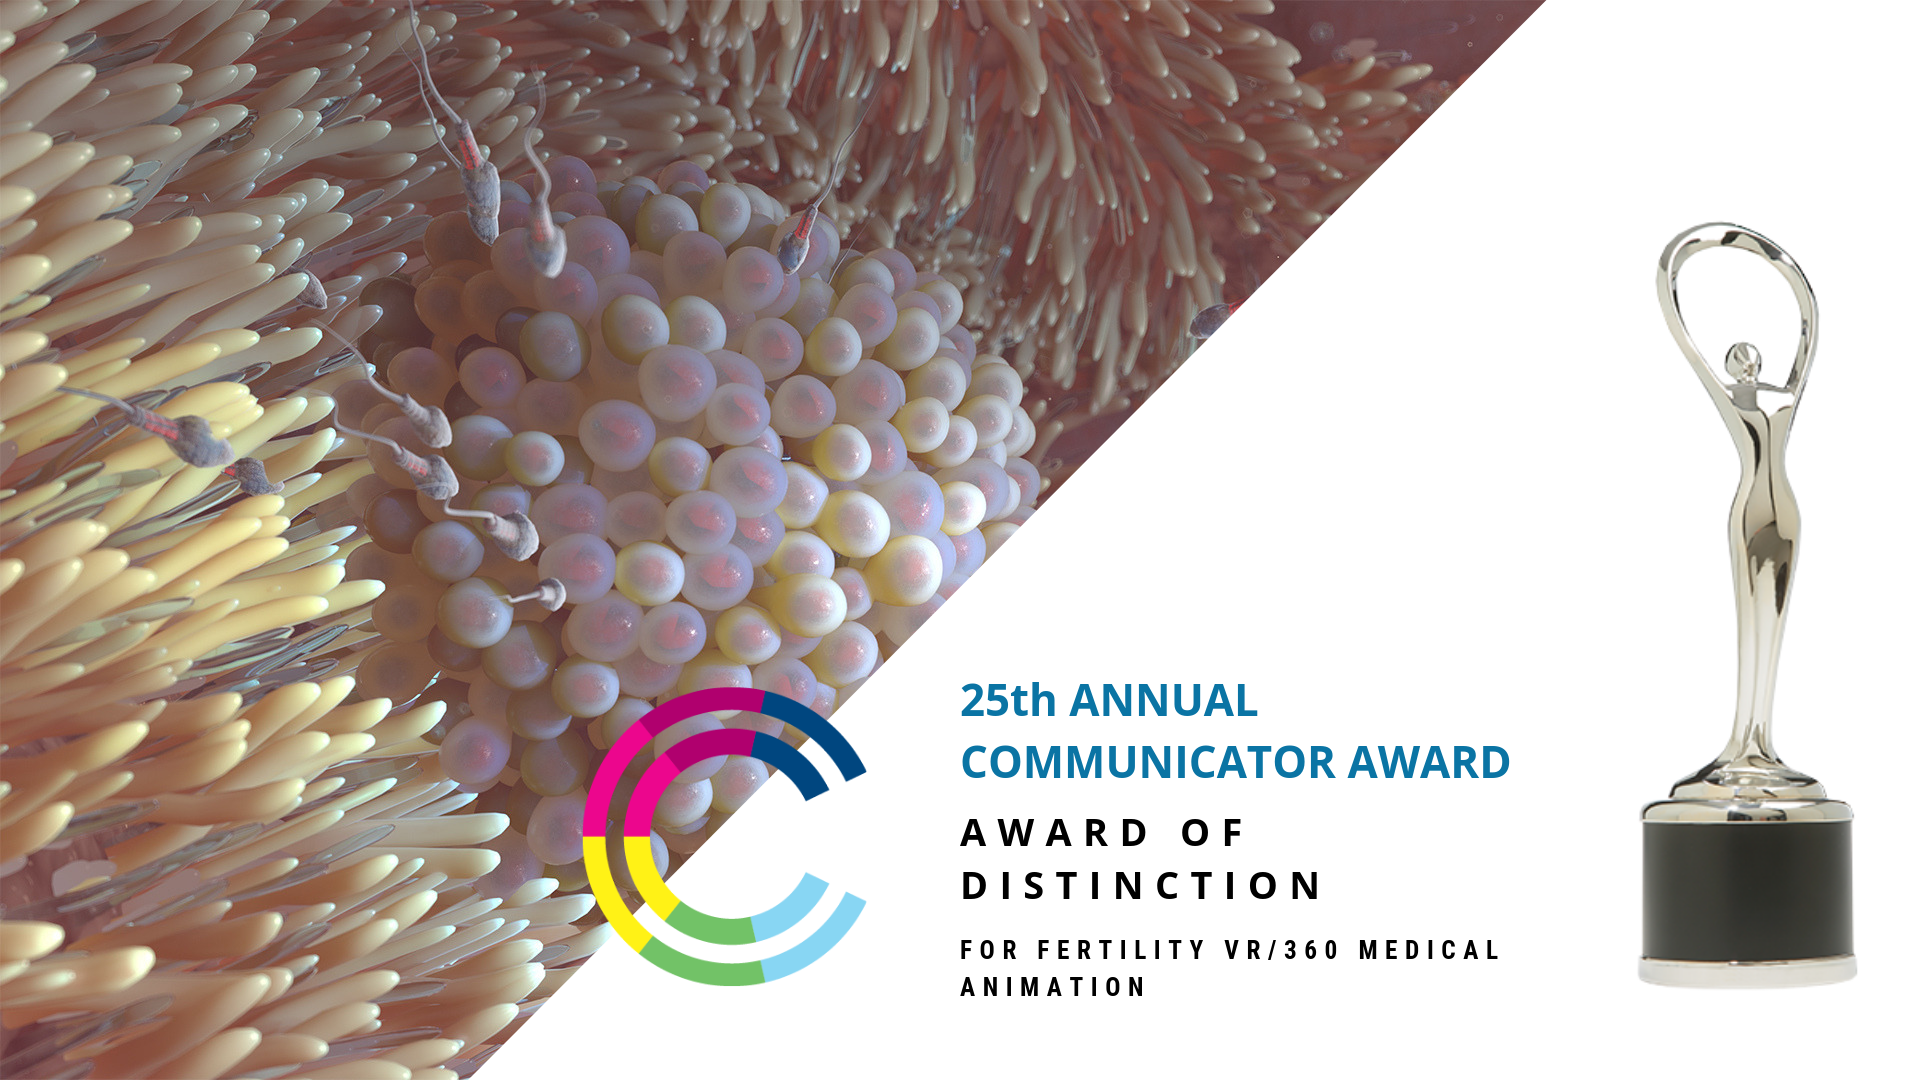 Nanobot Medical Animation Studio Was Honored for their Excellent VR Skills at the Annual Communicator Awards